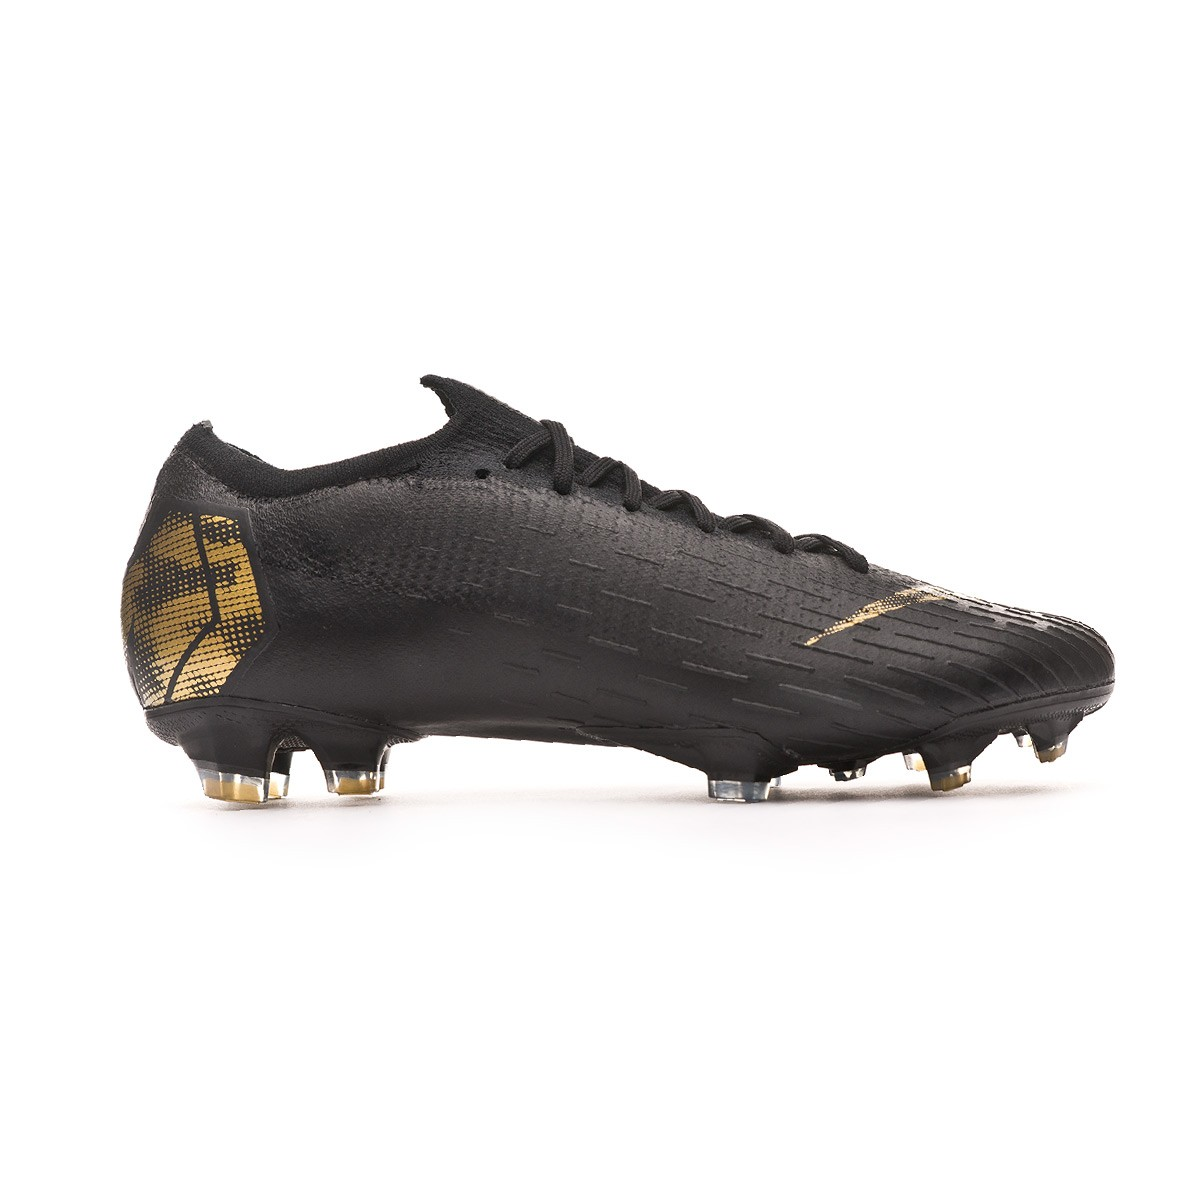 hot sale online 1bbd5 df074 Bota Mercurial Vapor XII Elite FG Black-Metallic vivid gold